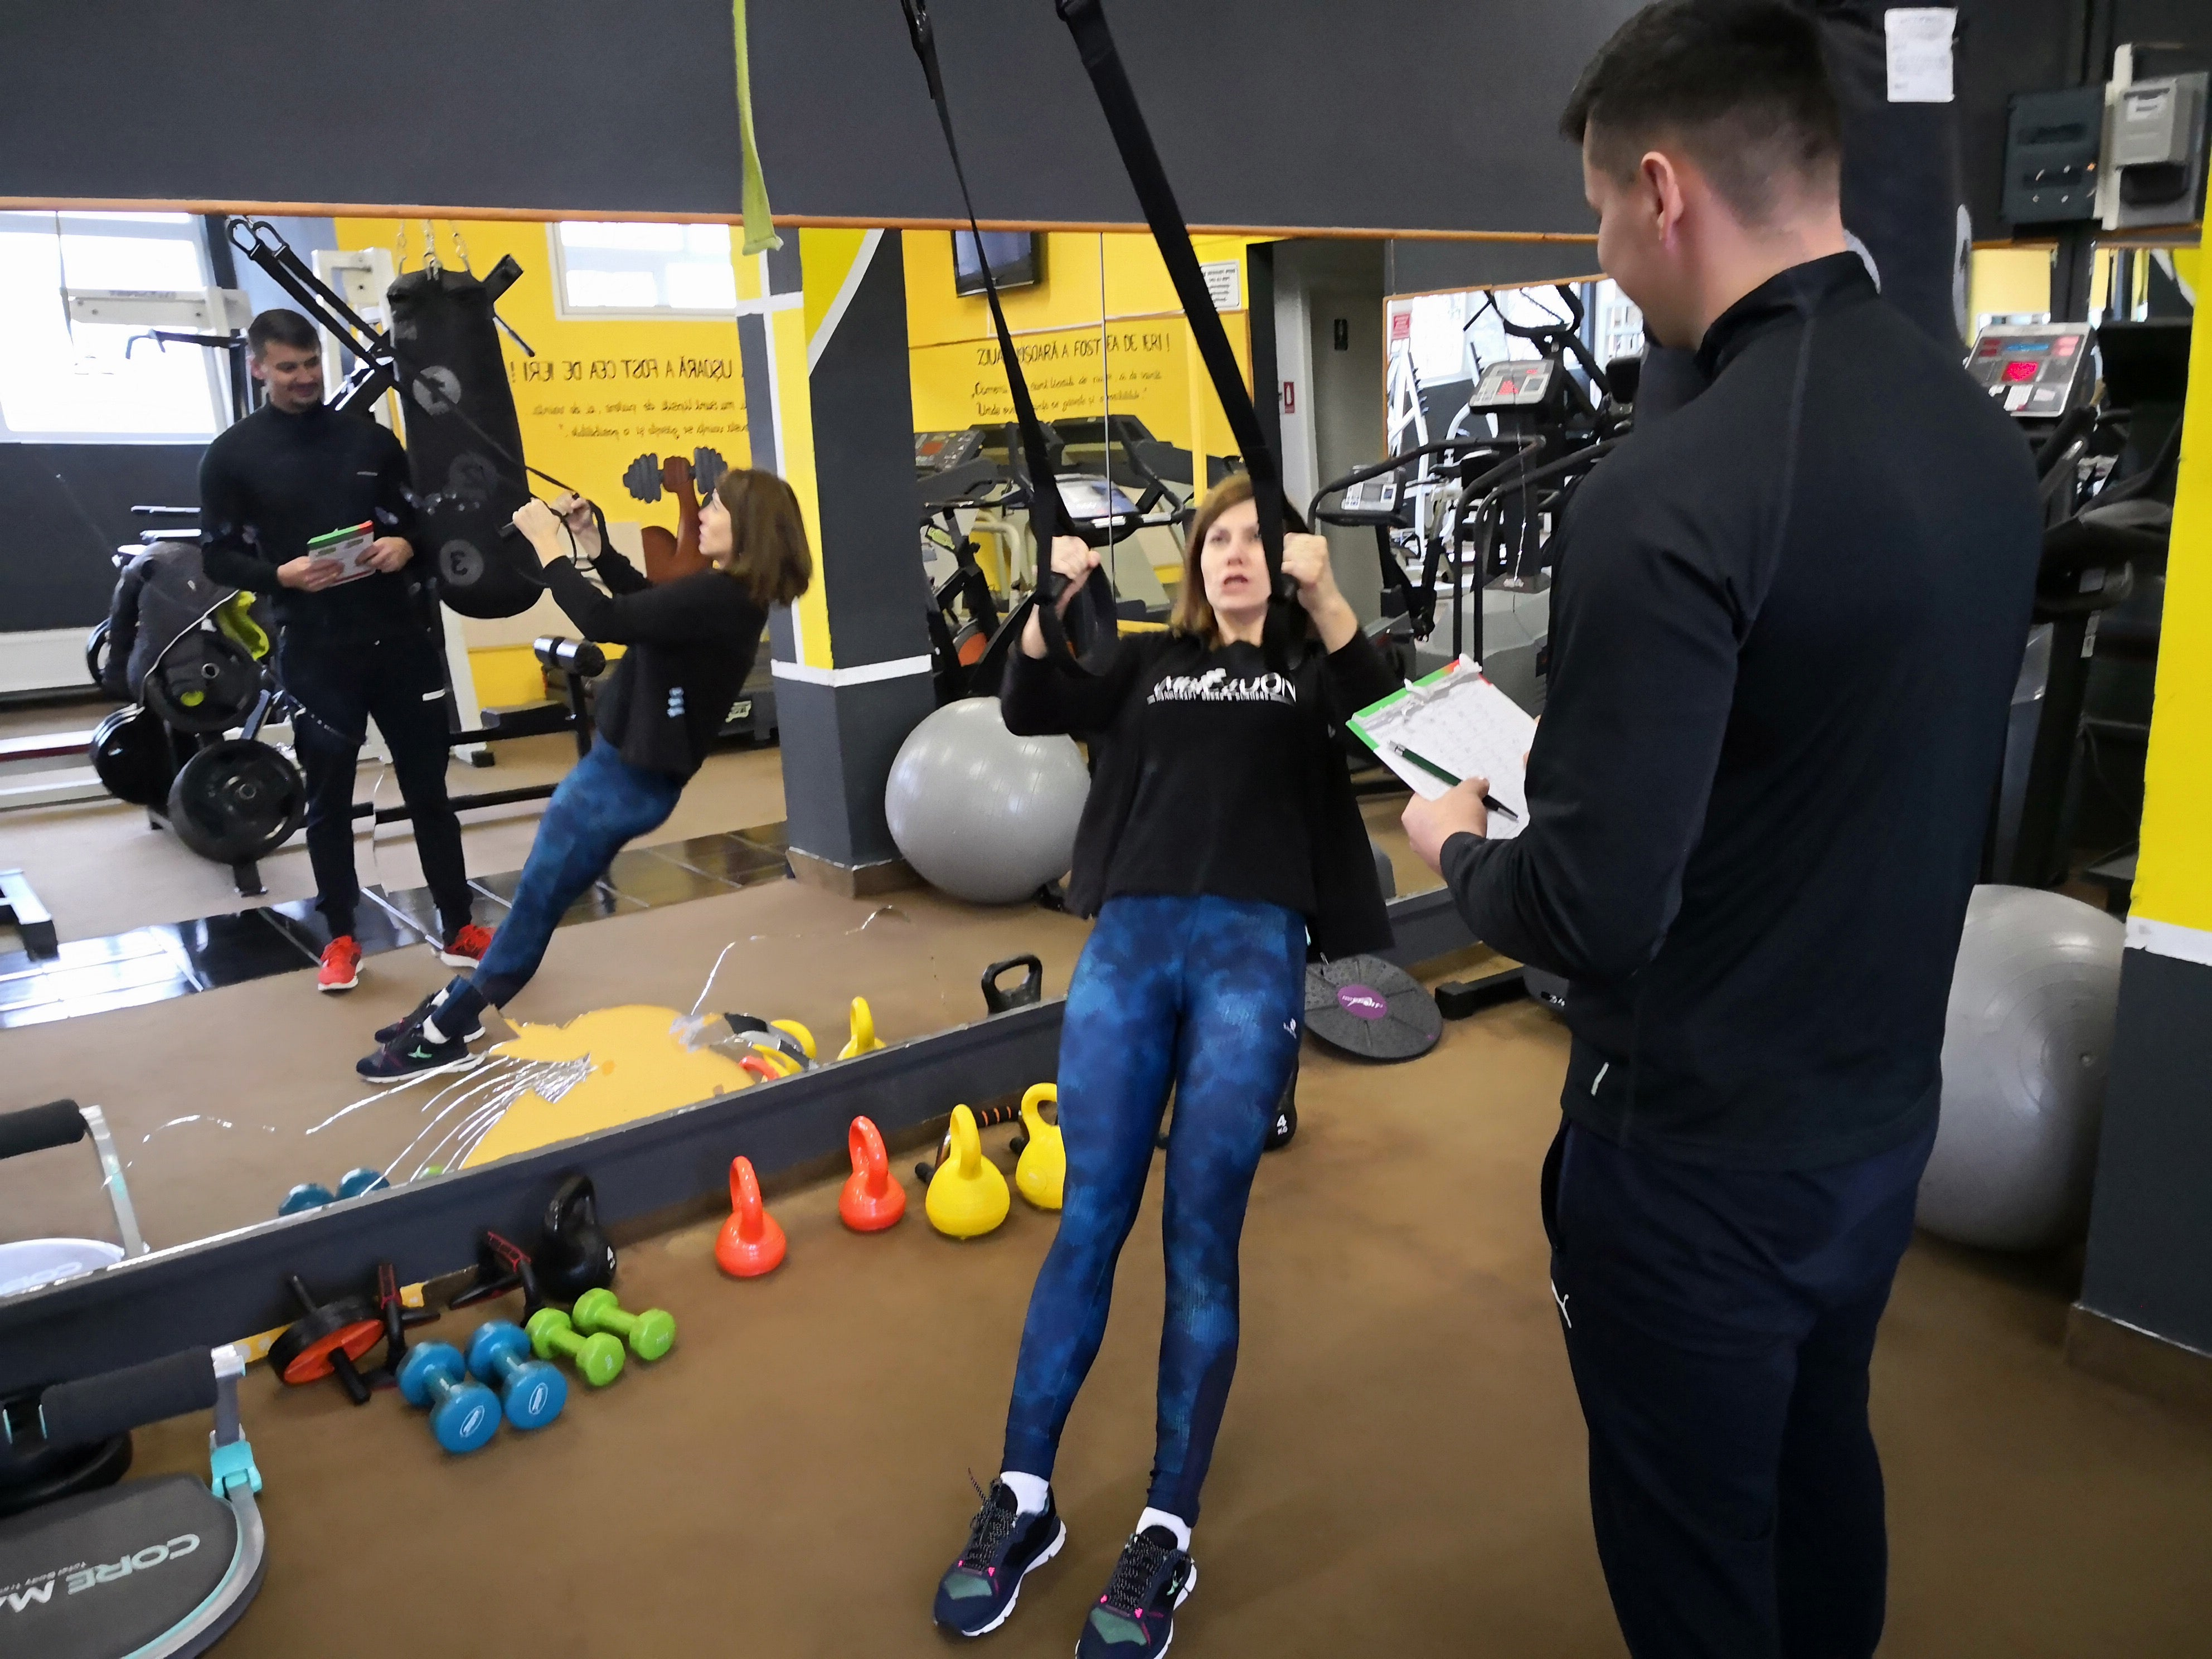 Info: Curs Instructor Fitness si Personal Trainer - ABC Fitness - World of Fitness Romania